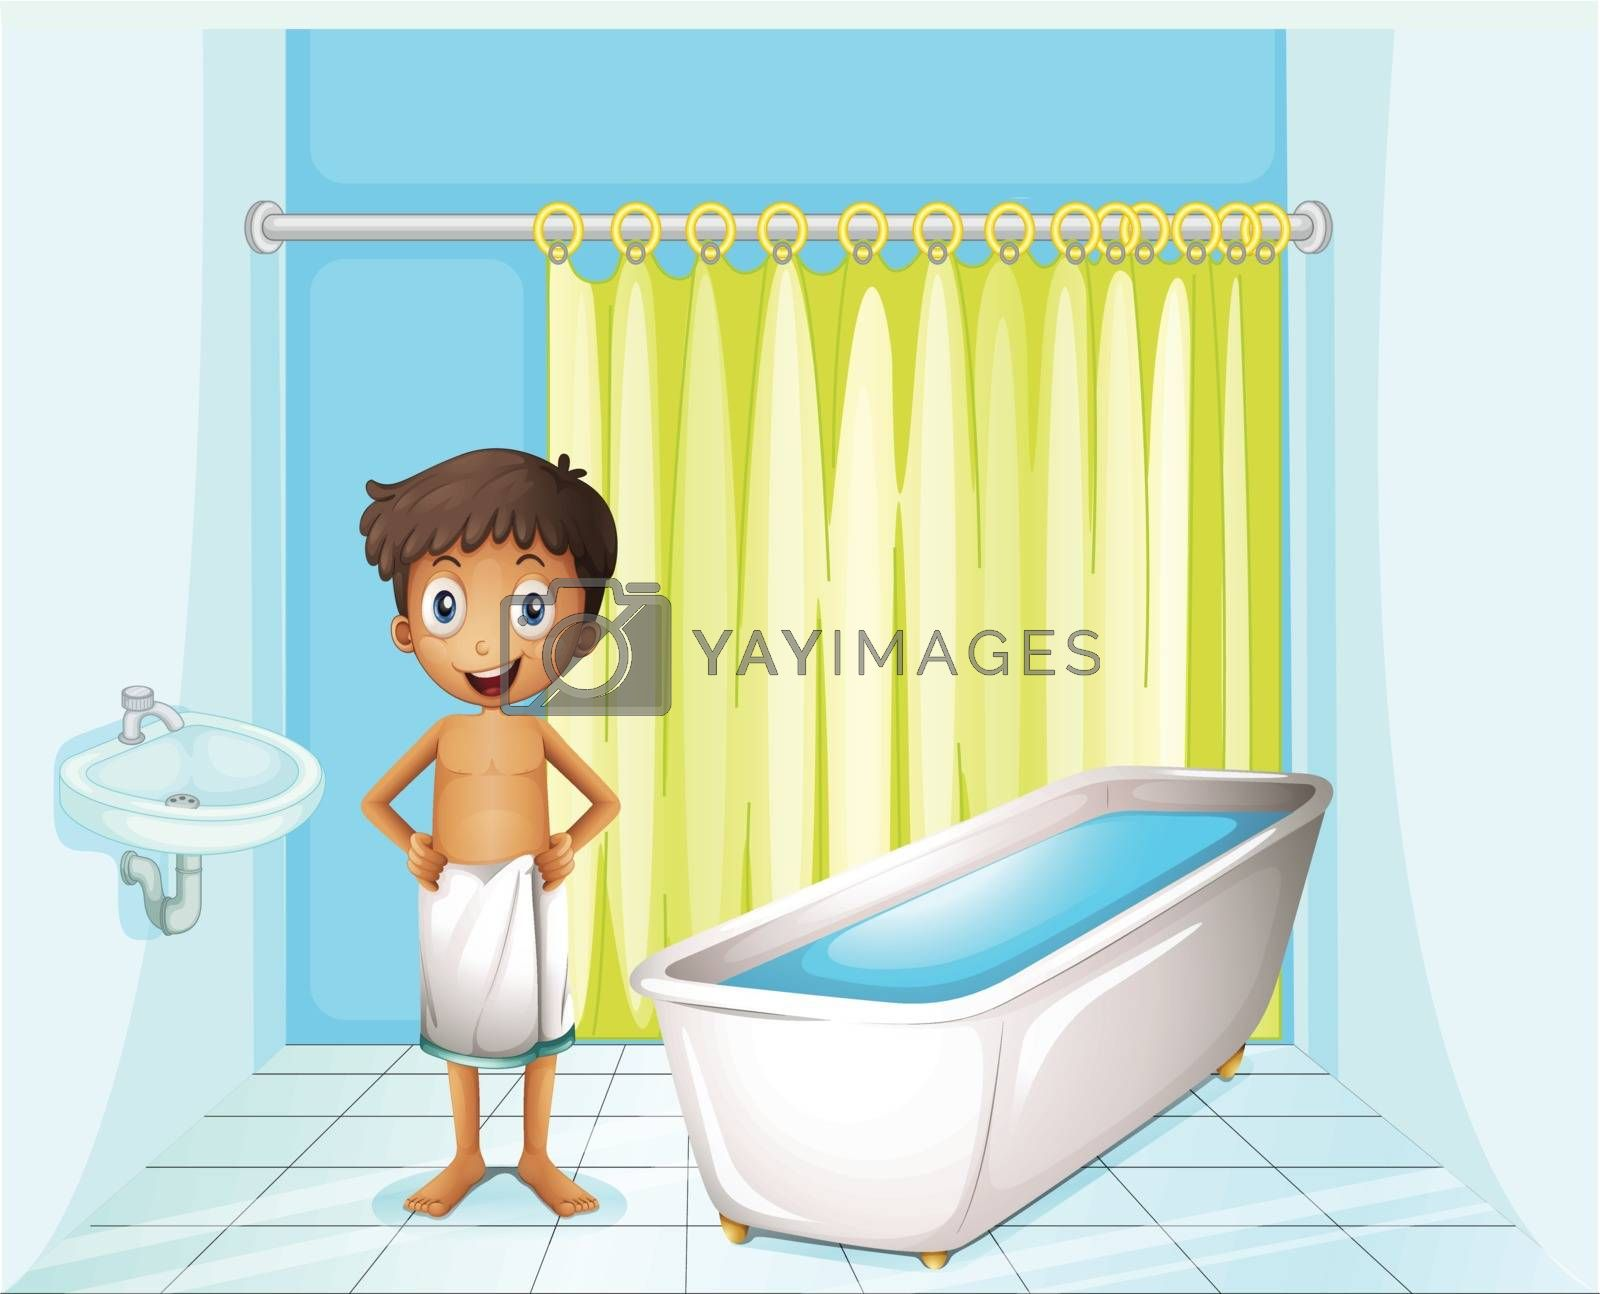 Illustration of a boy at the bathroom on a white background